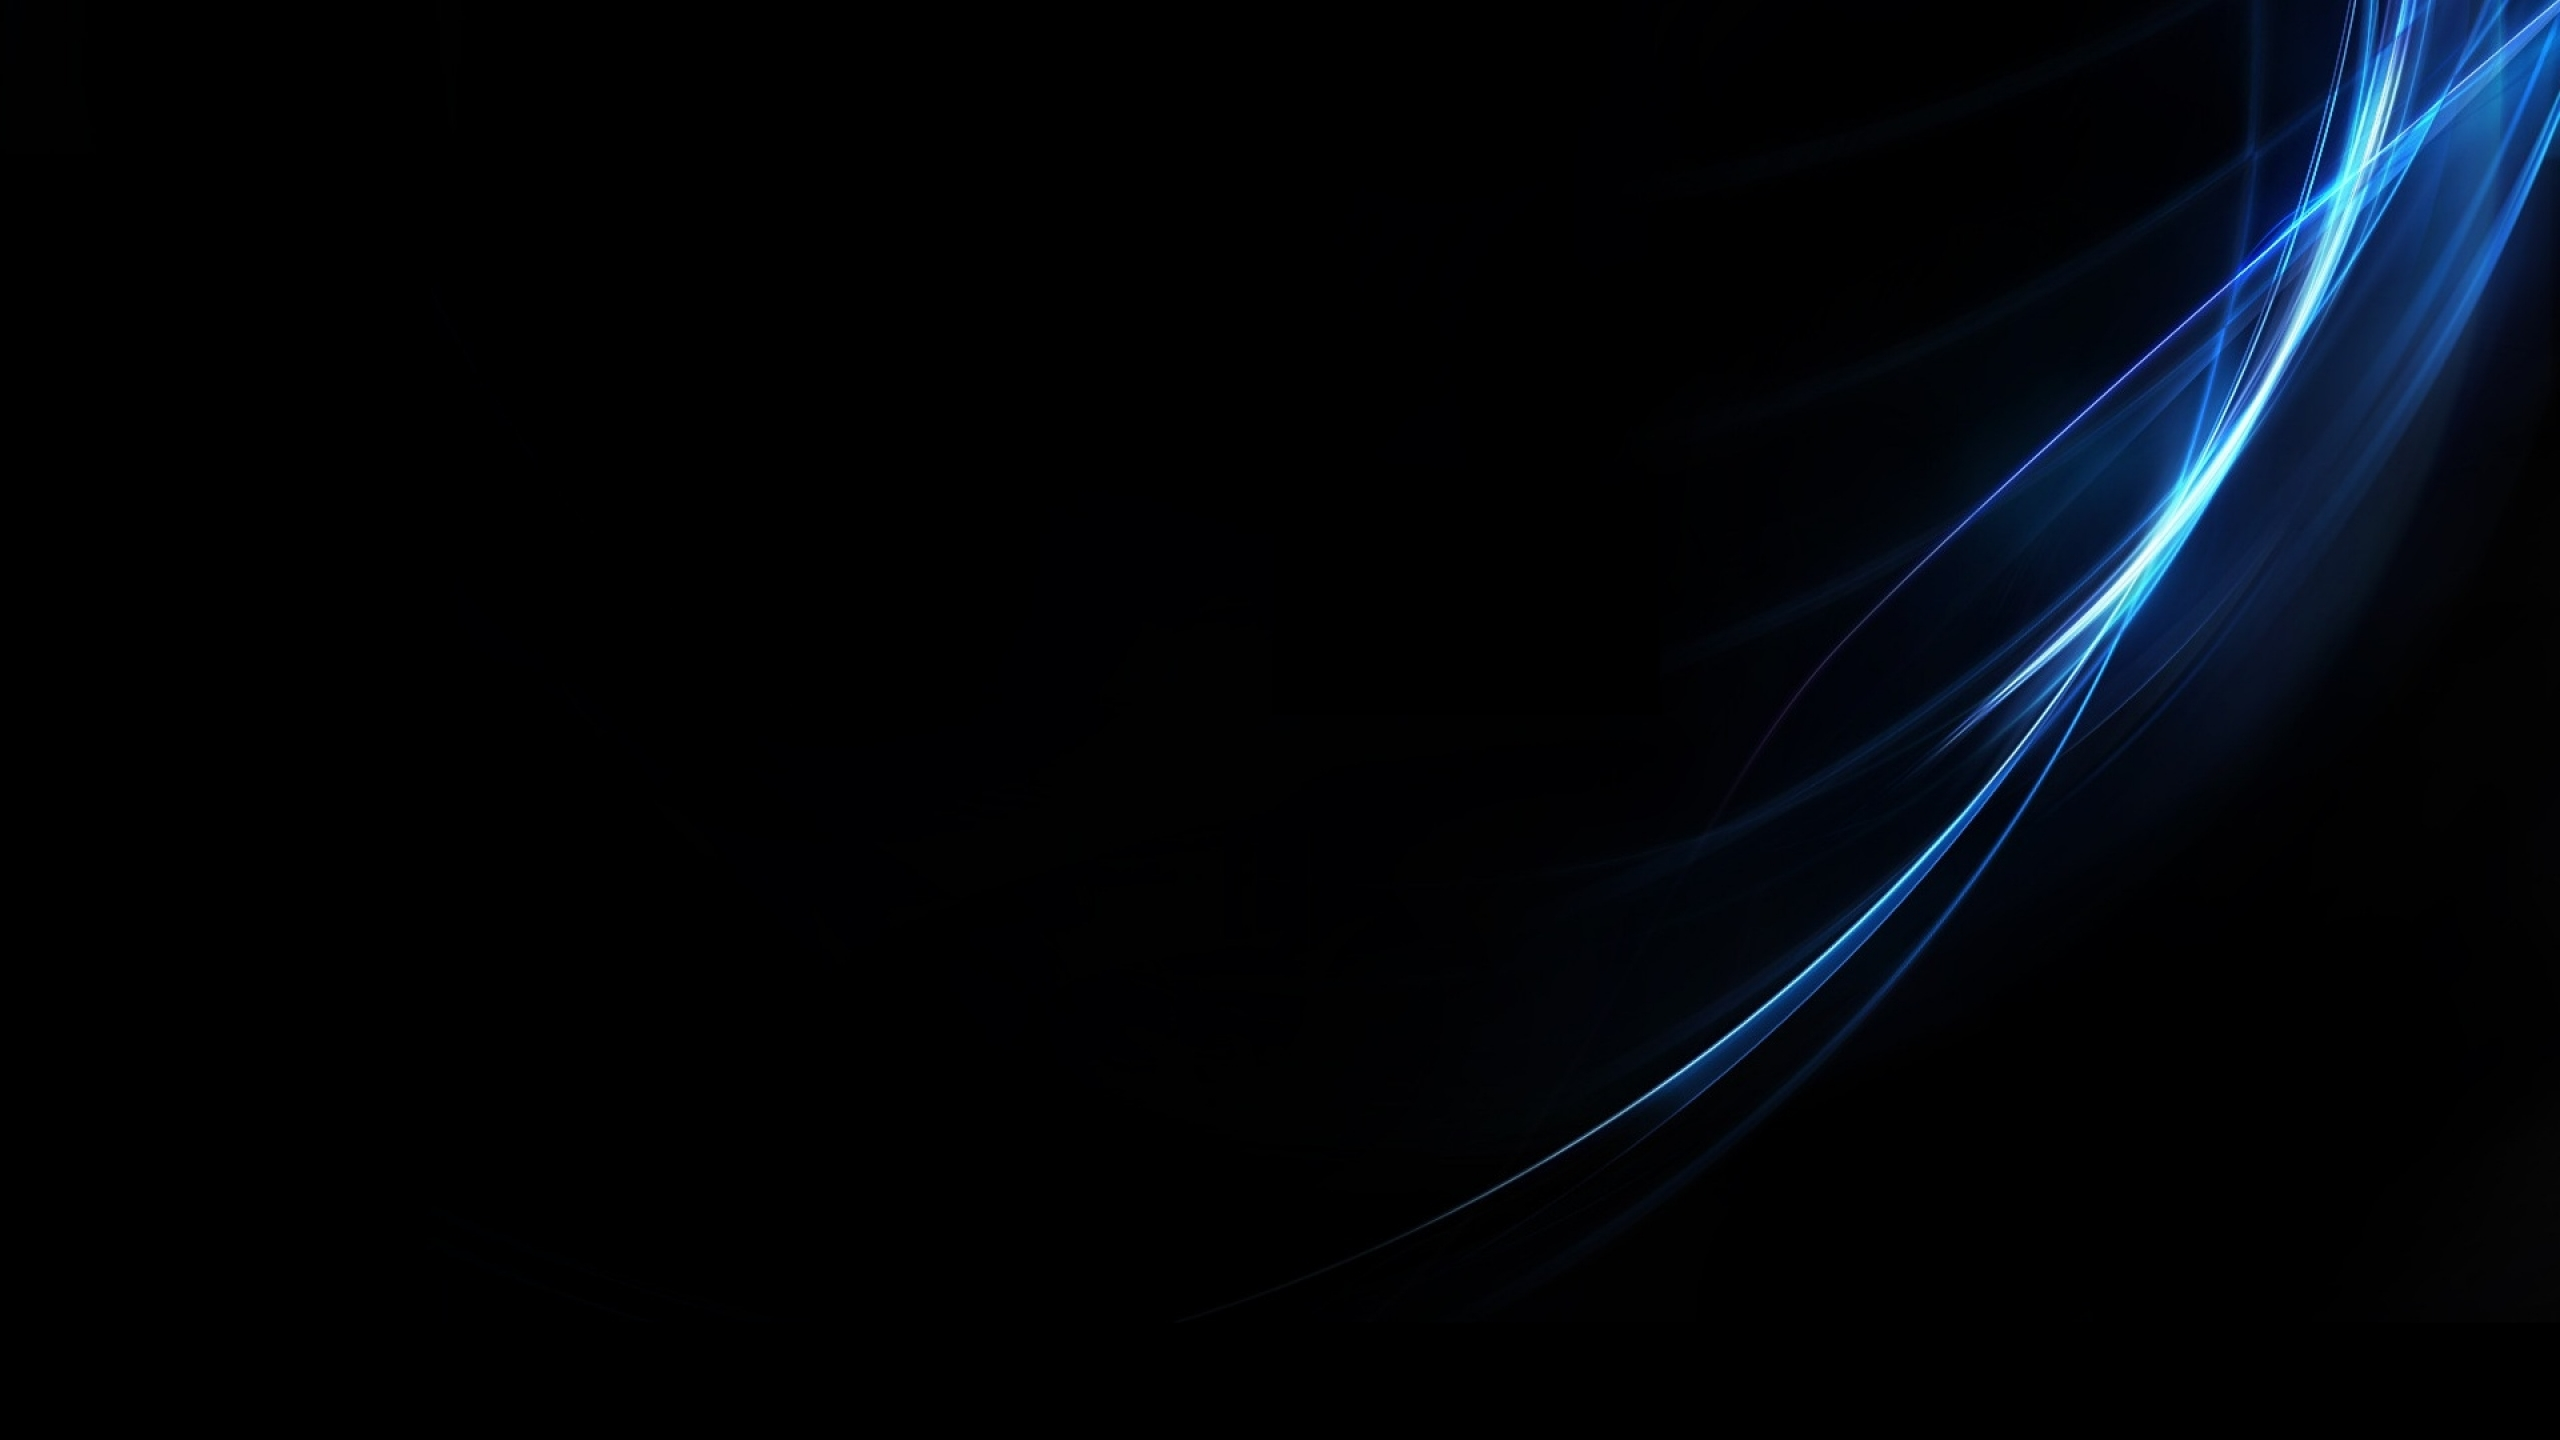 Free Download Black Abstract Windows 81 Wallpapers All For Windows